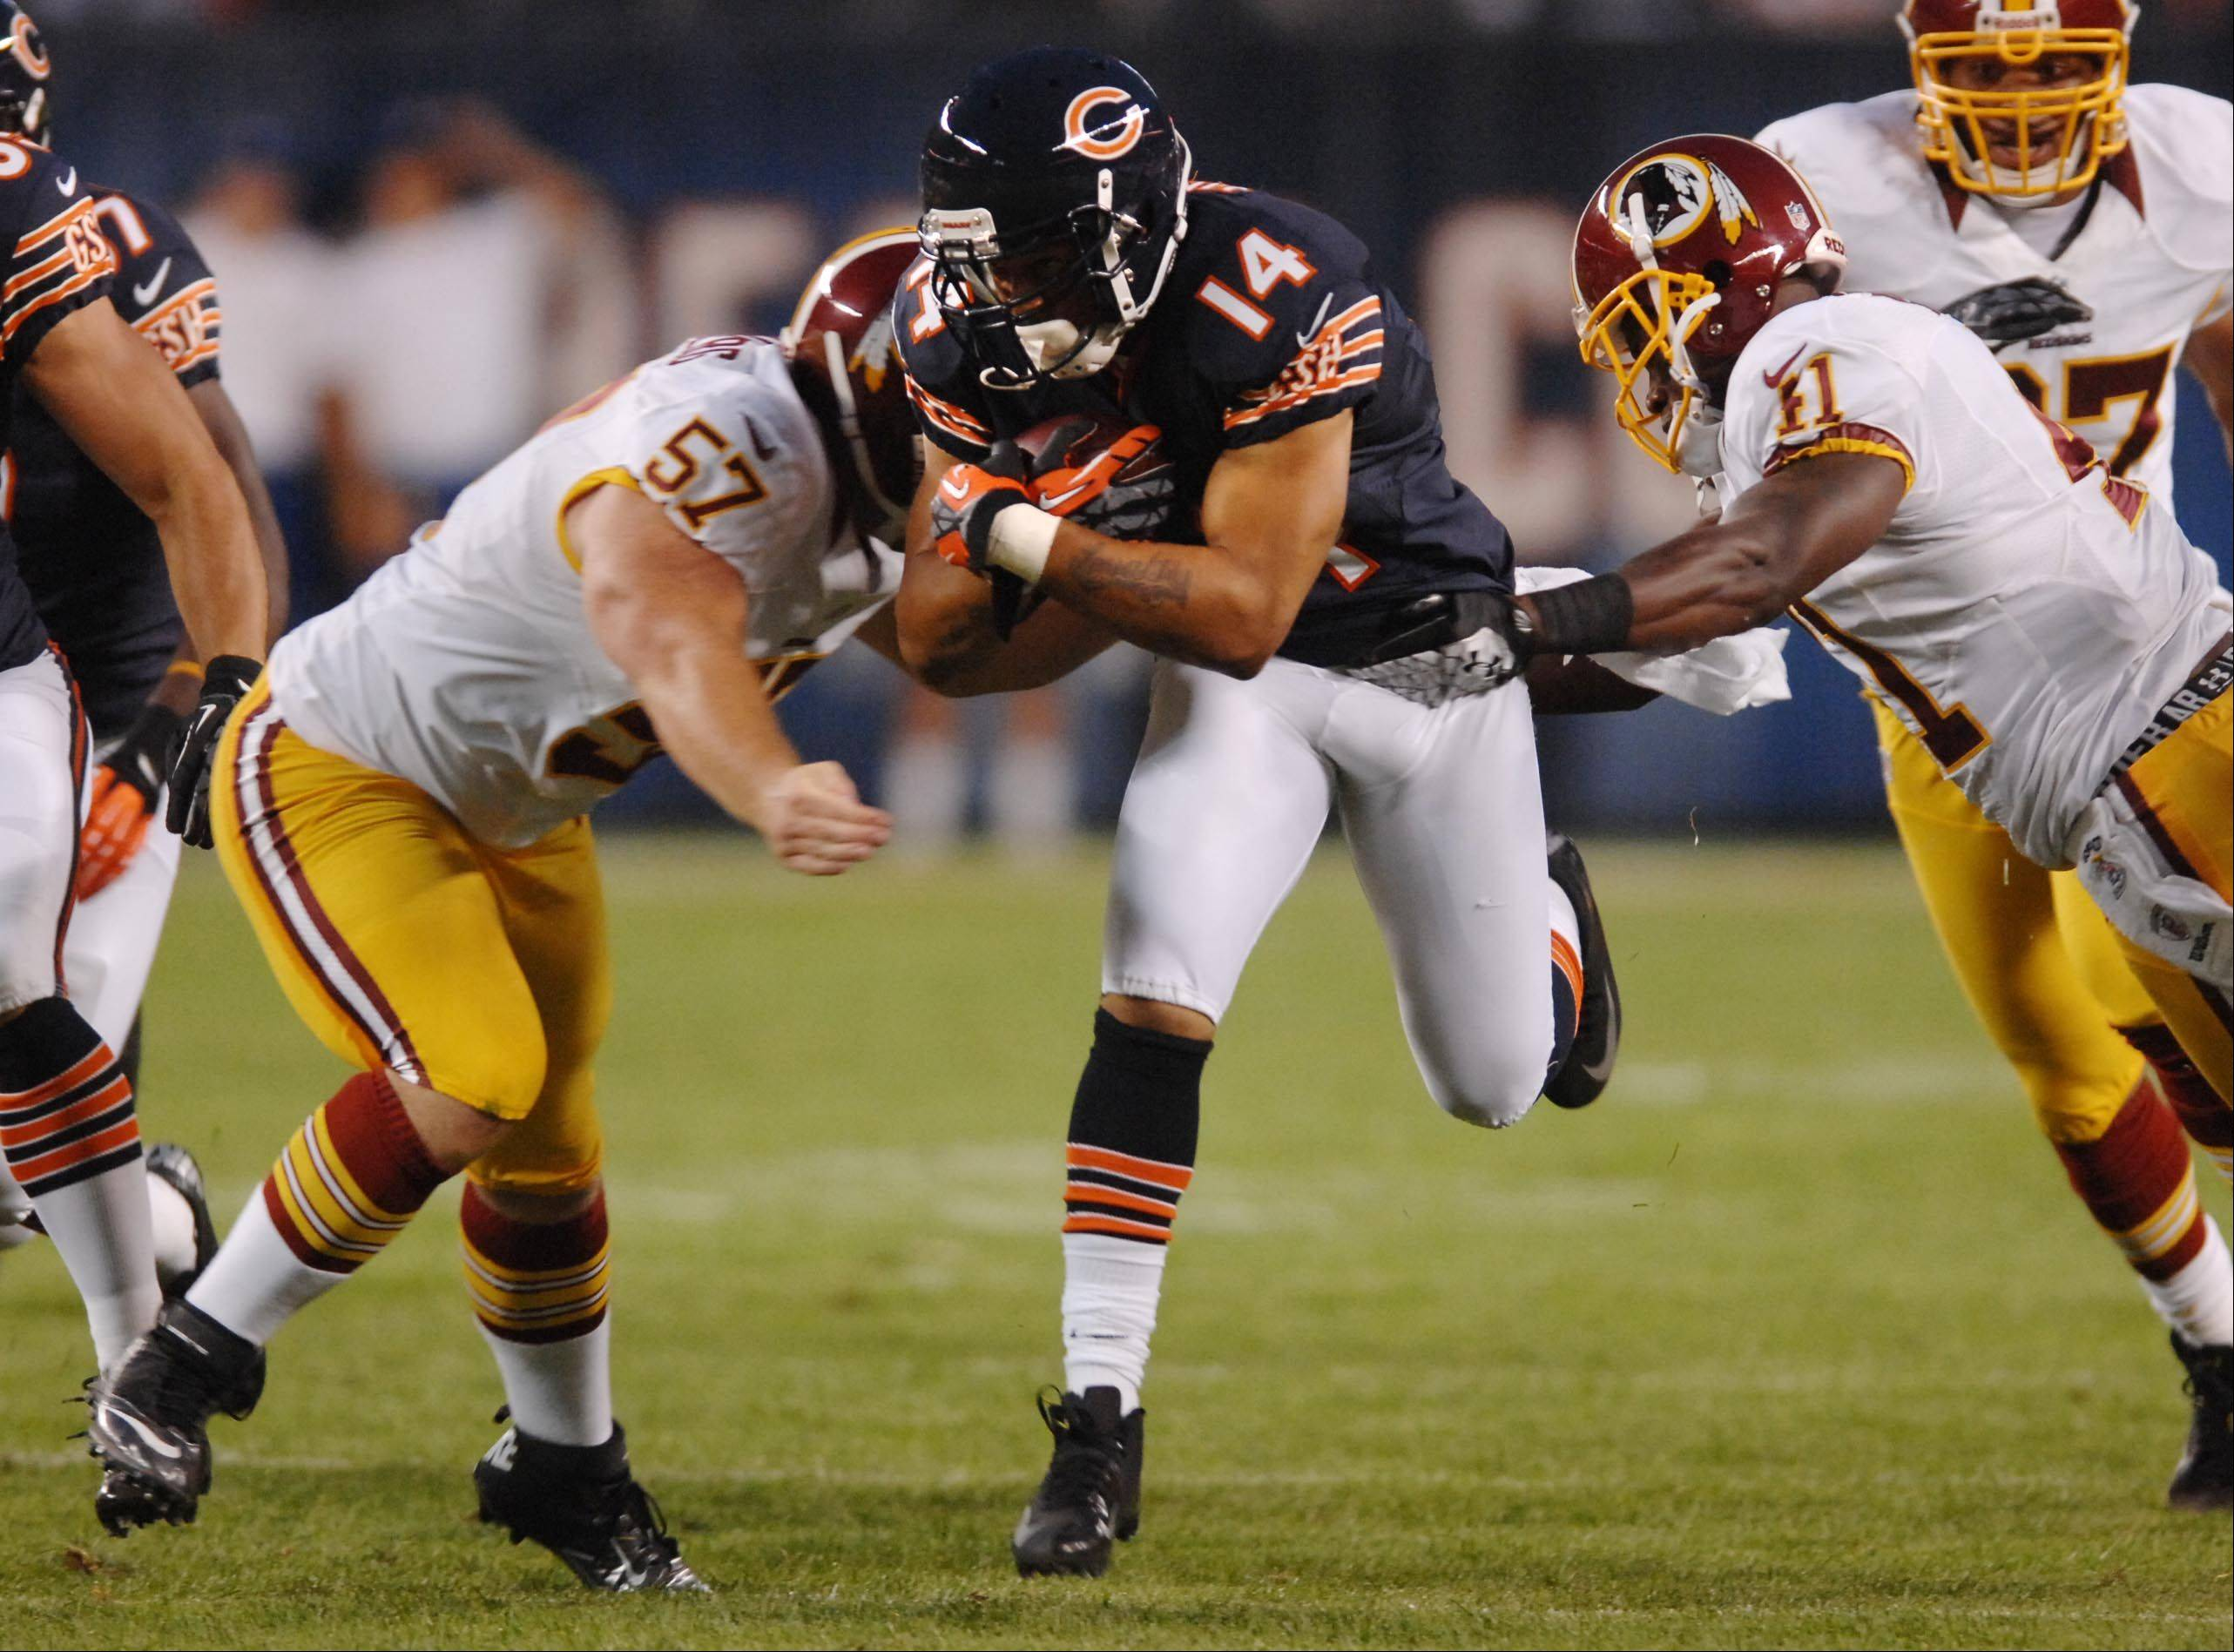 Chicago Bears wide receiver Eric Weems splits the defense Saturday against the Washington Redskins in the second preseason game at Soldier Field in Chicago.